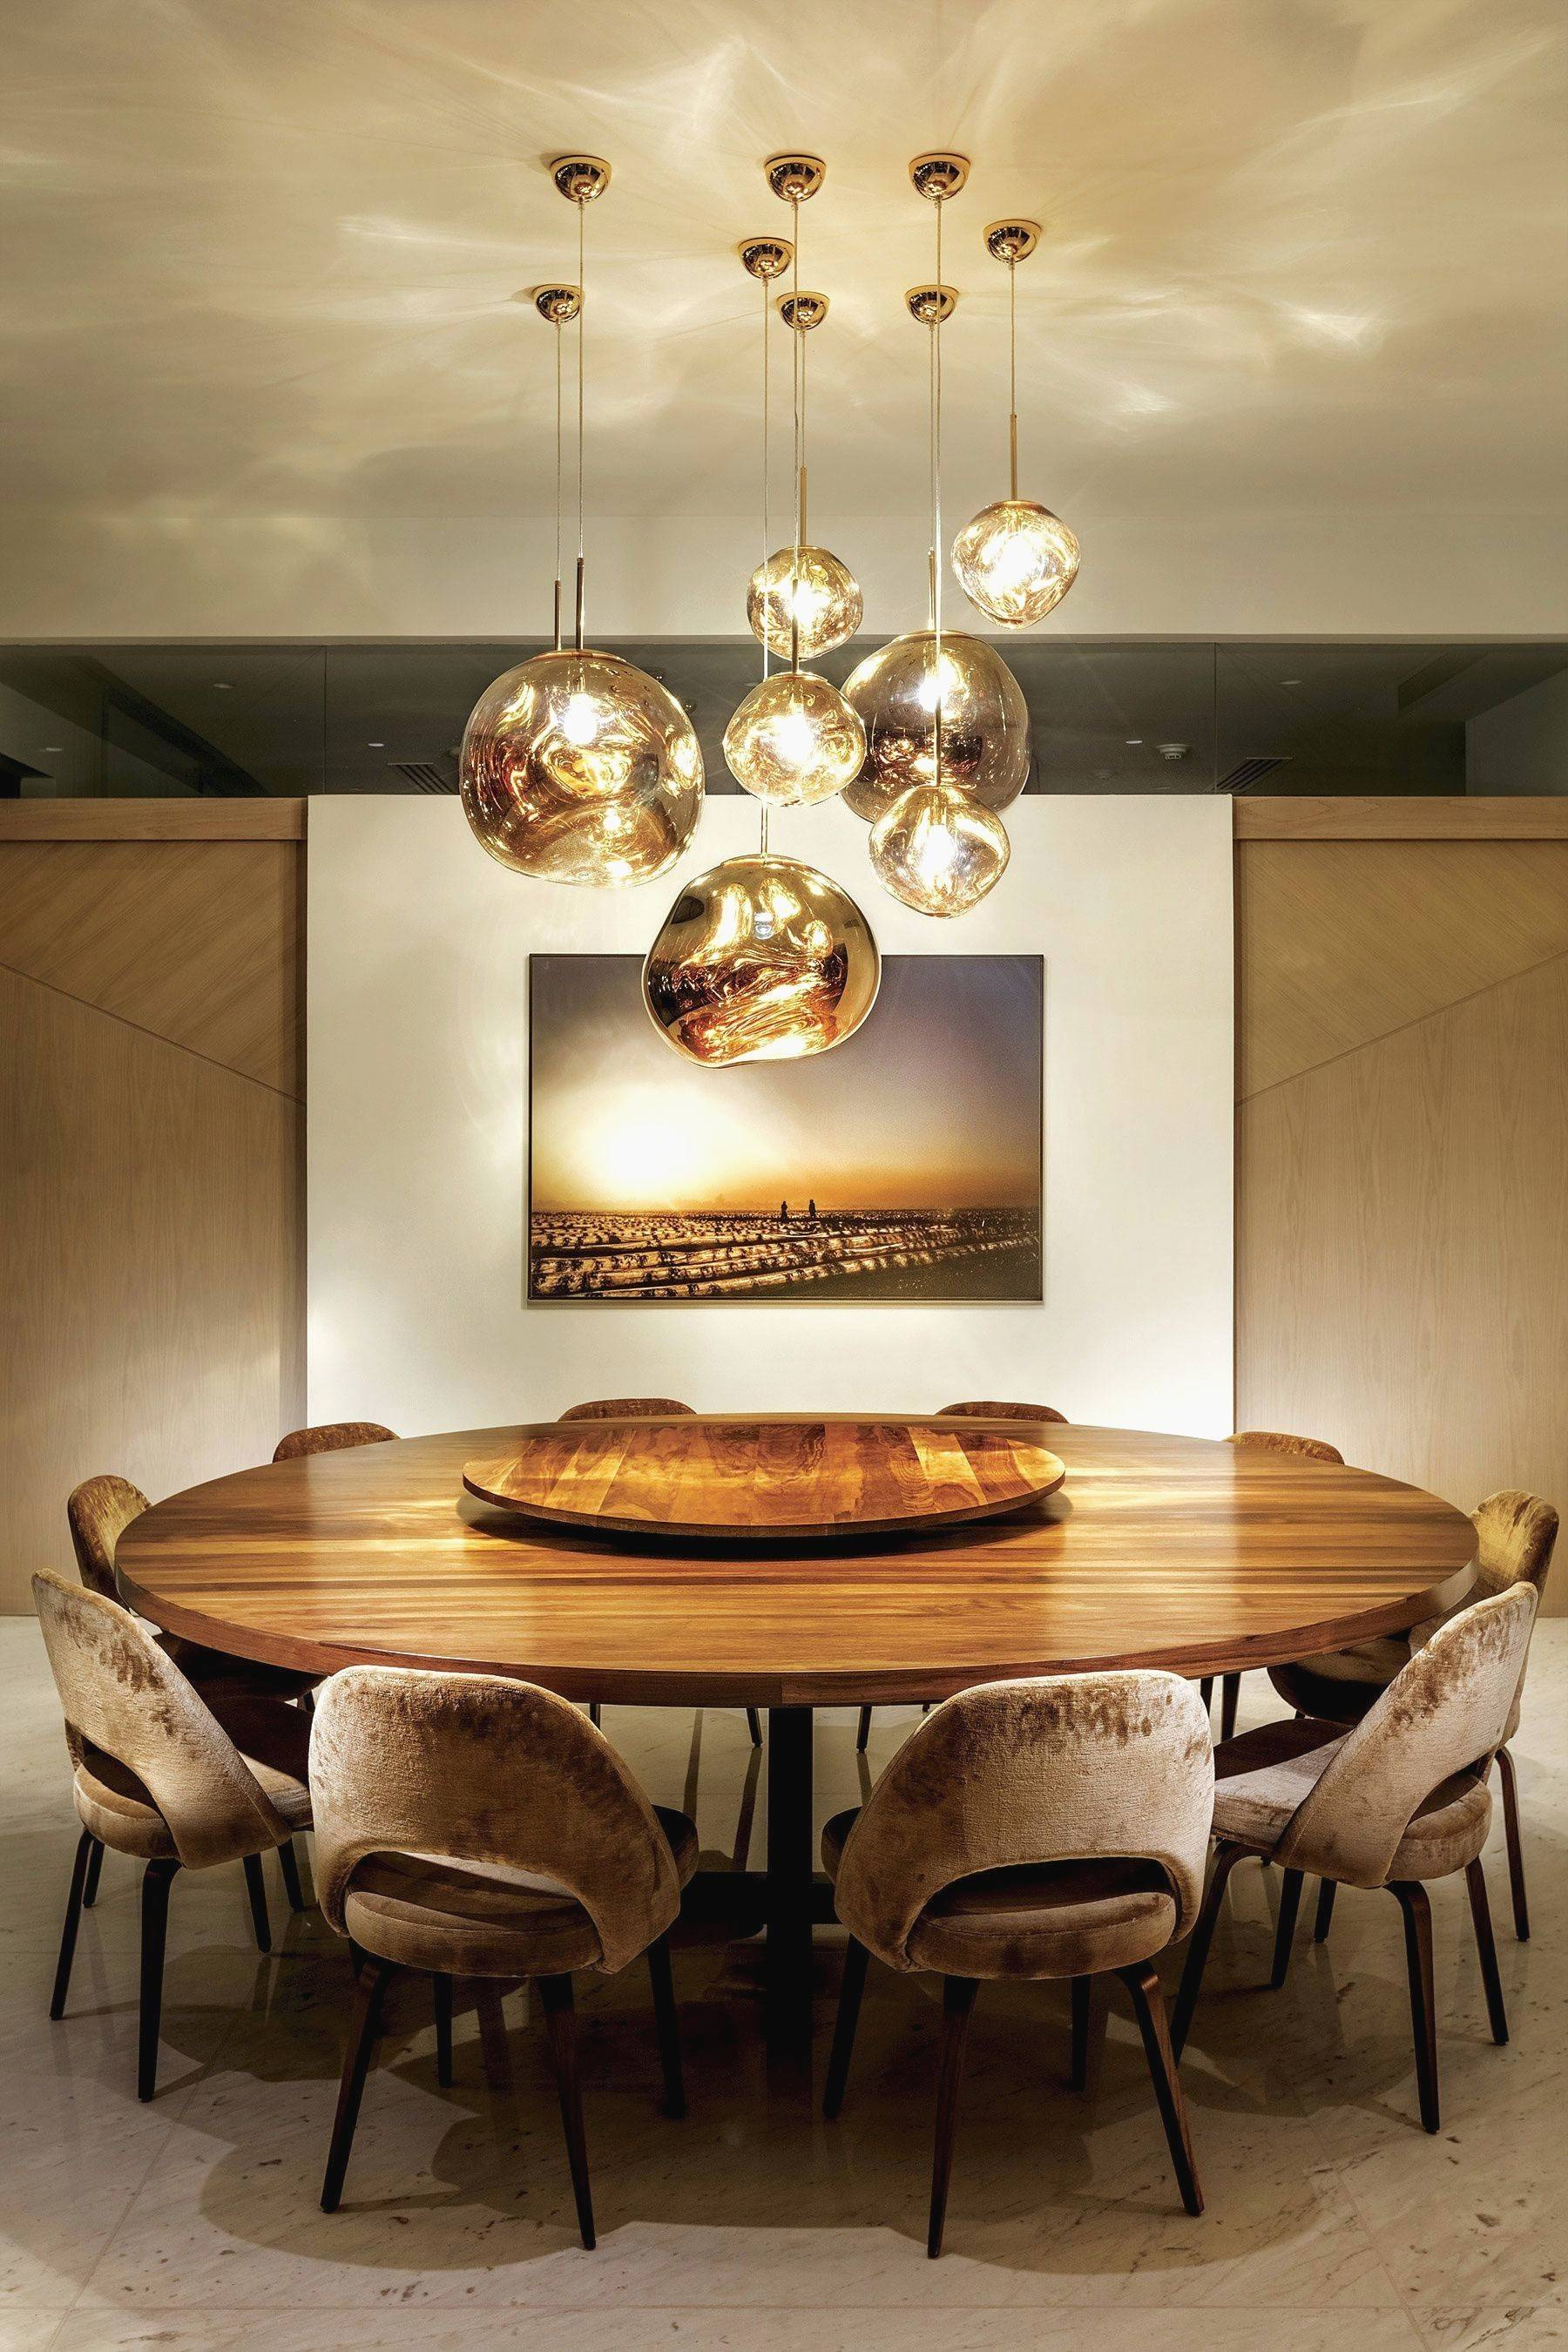 kitchen light ideas elegant beautiful dining room lighting ideas of kitchen light ideas